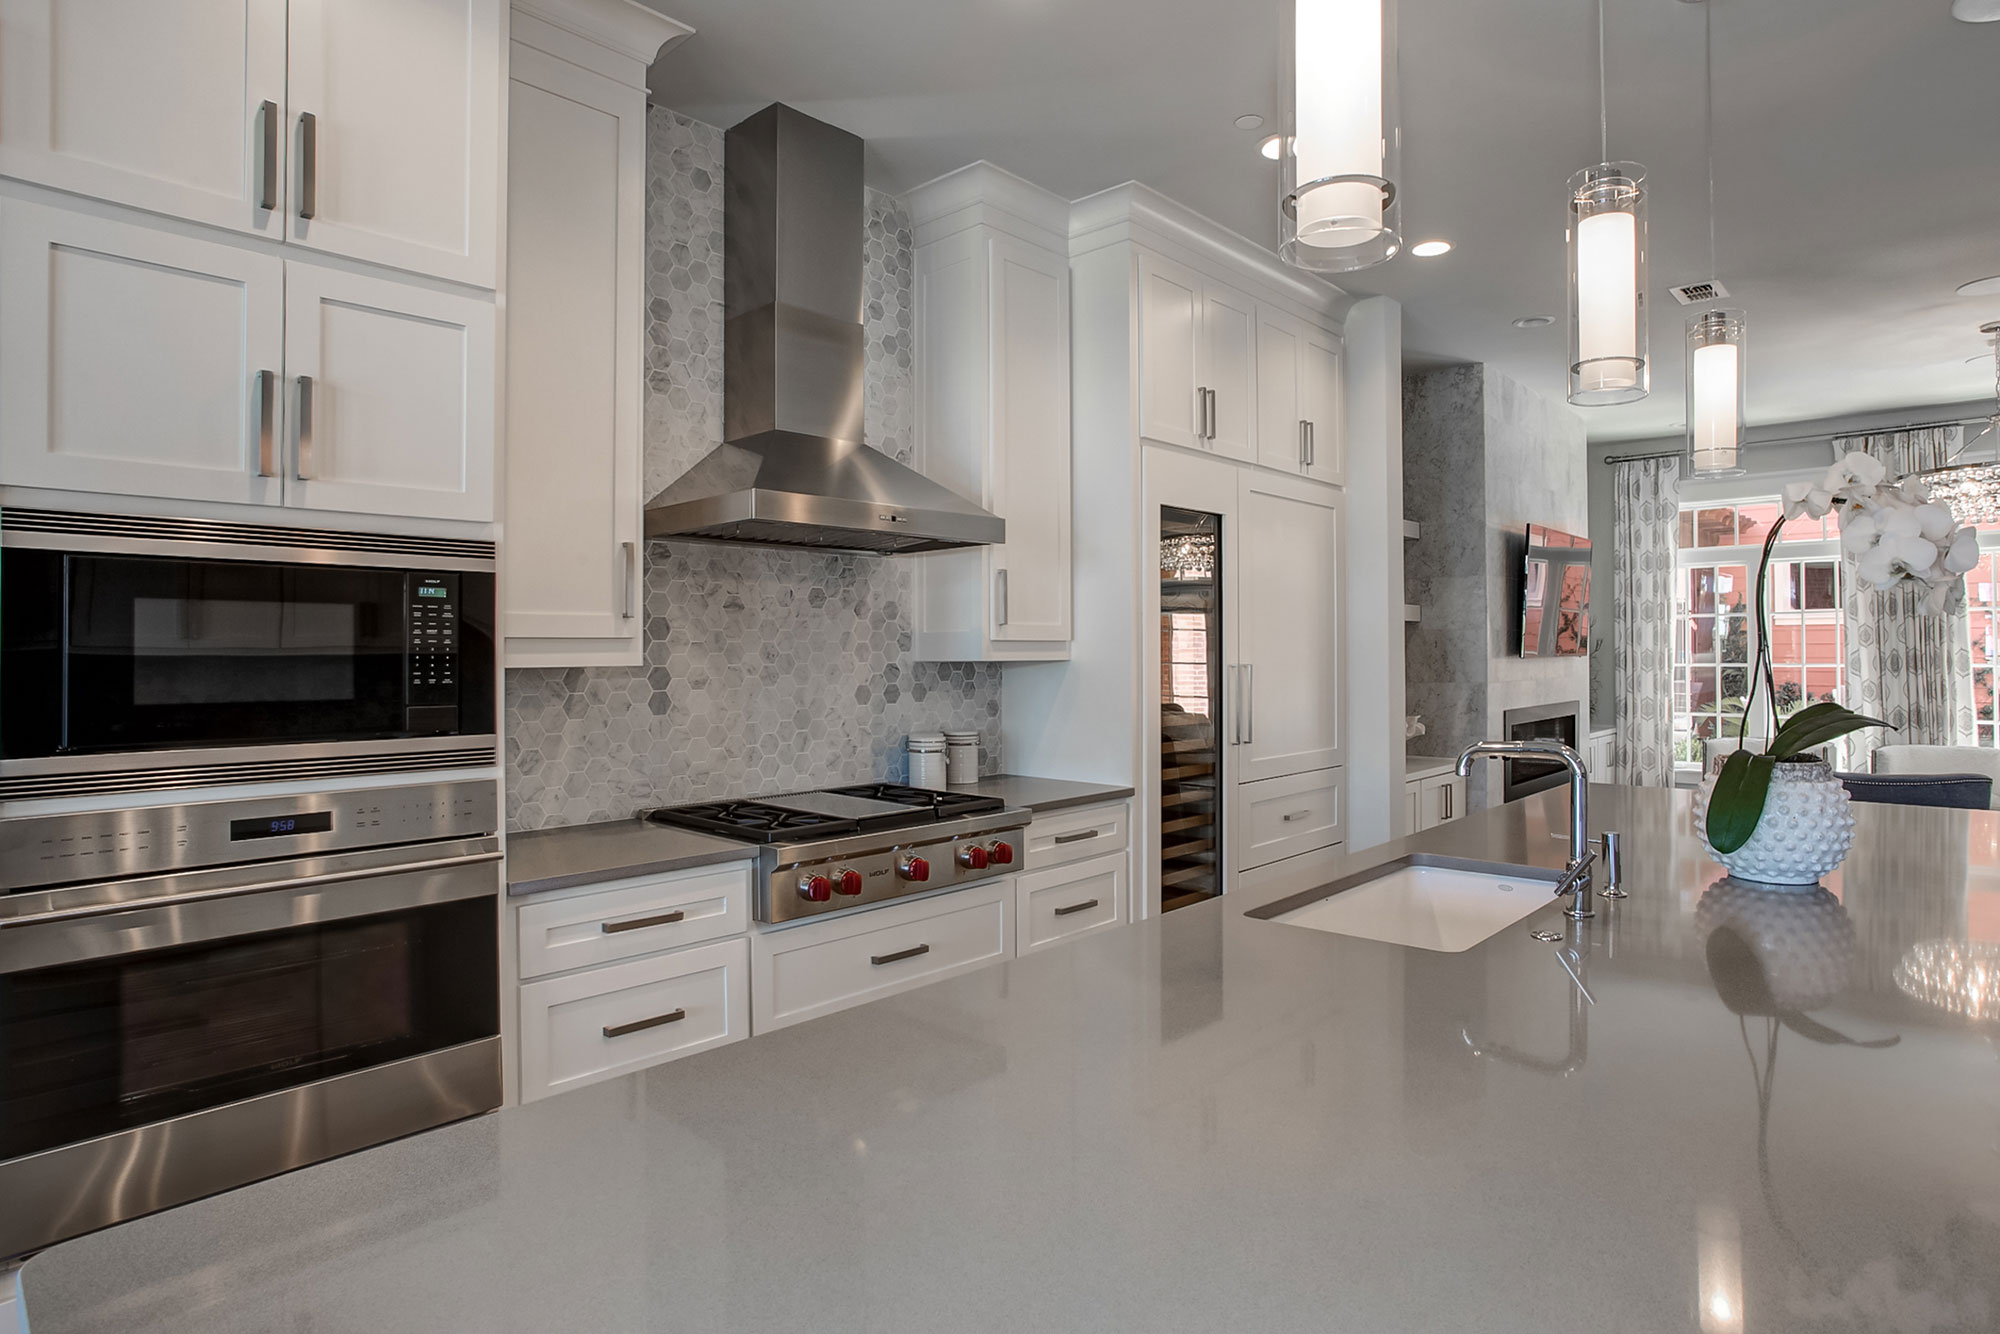 See Inside The Garden Districts NEW Brownstone Model Home